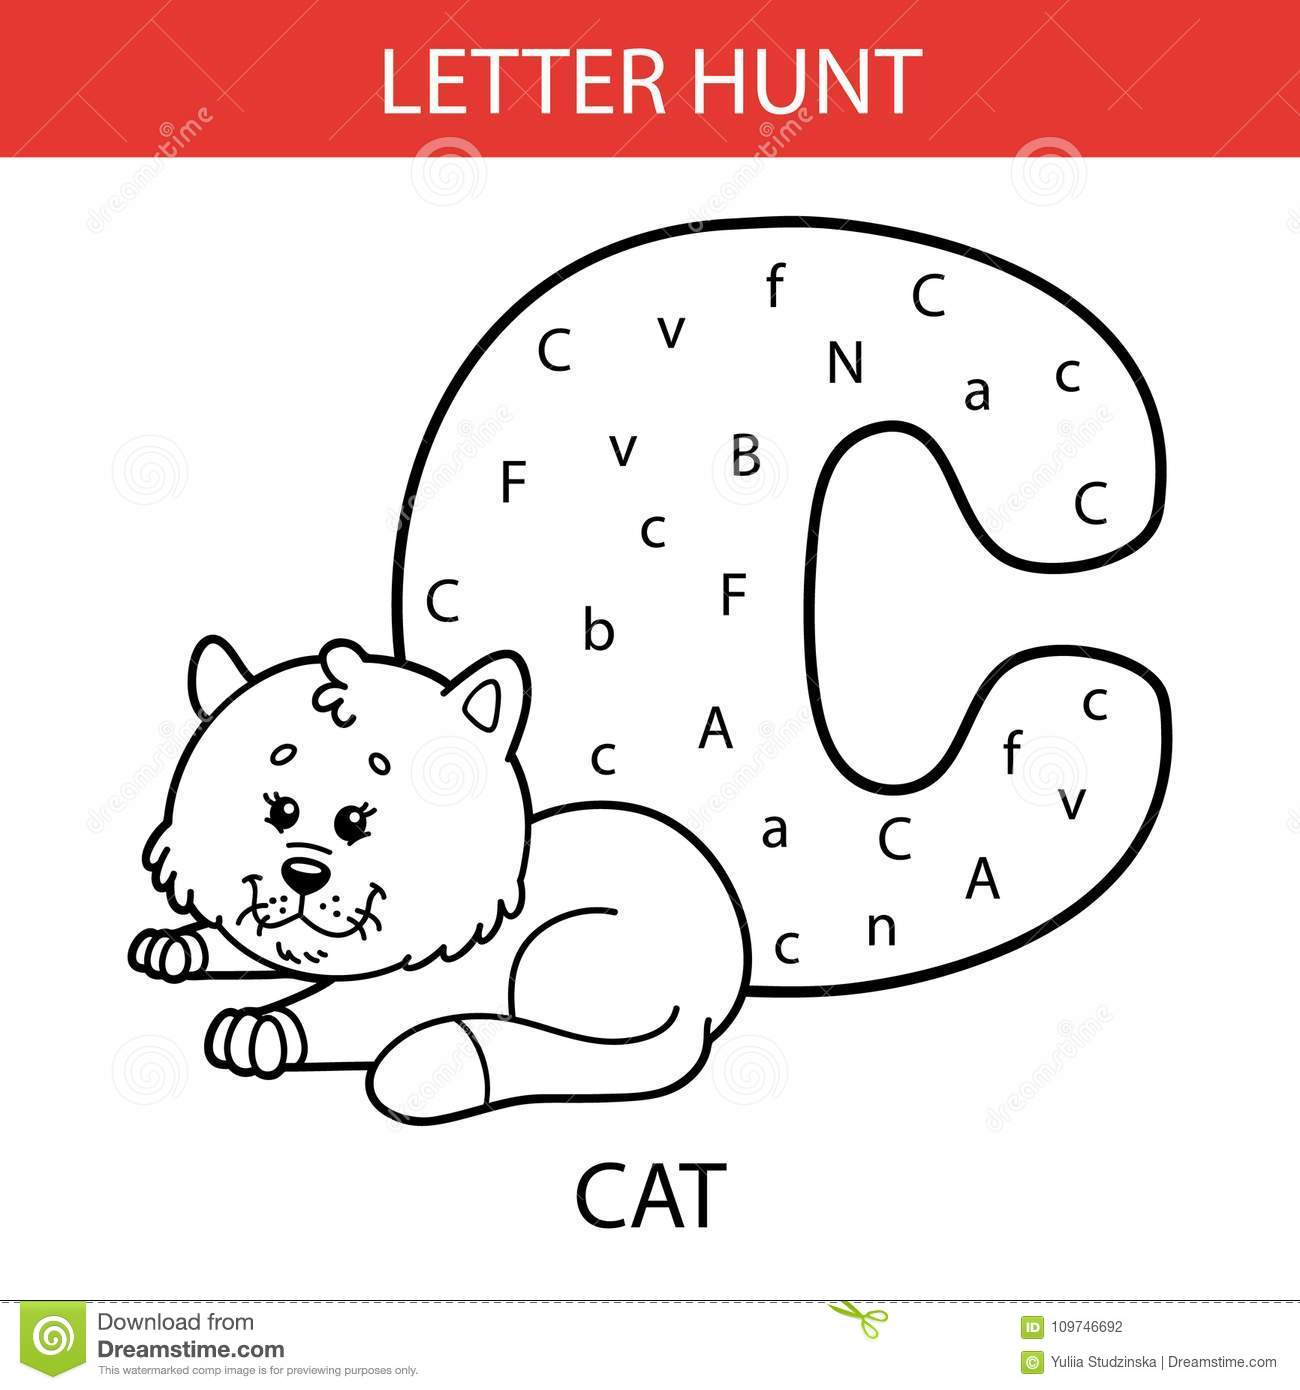 Chat Animal De Chasse A Lettre Illustration De Vecteur